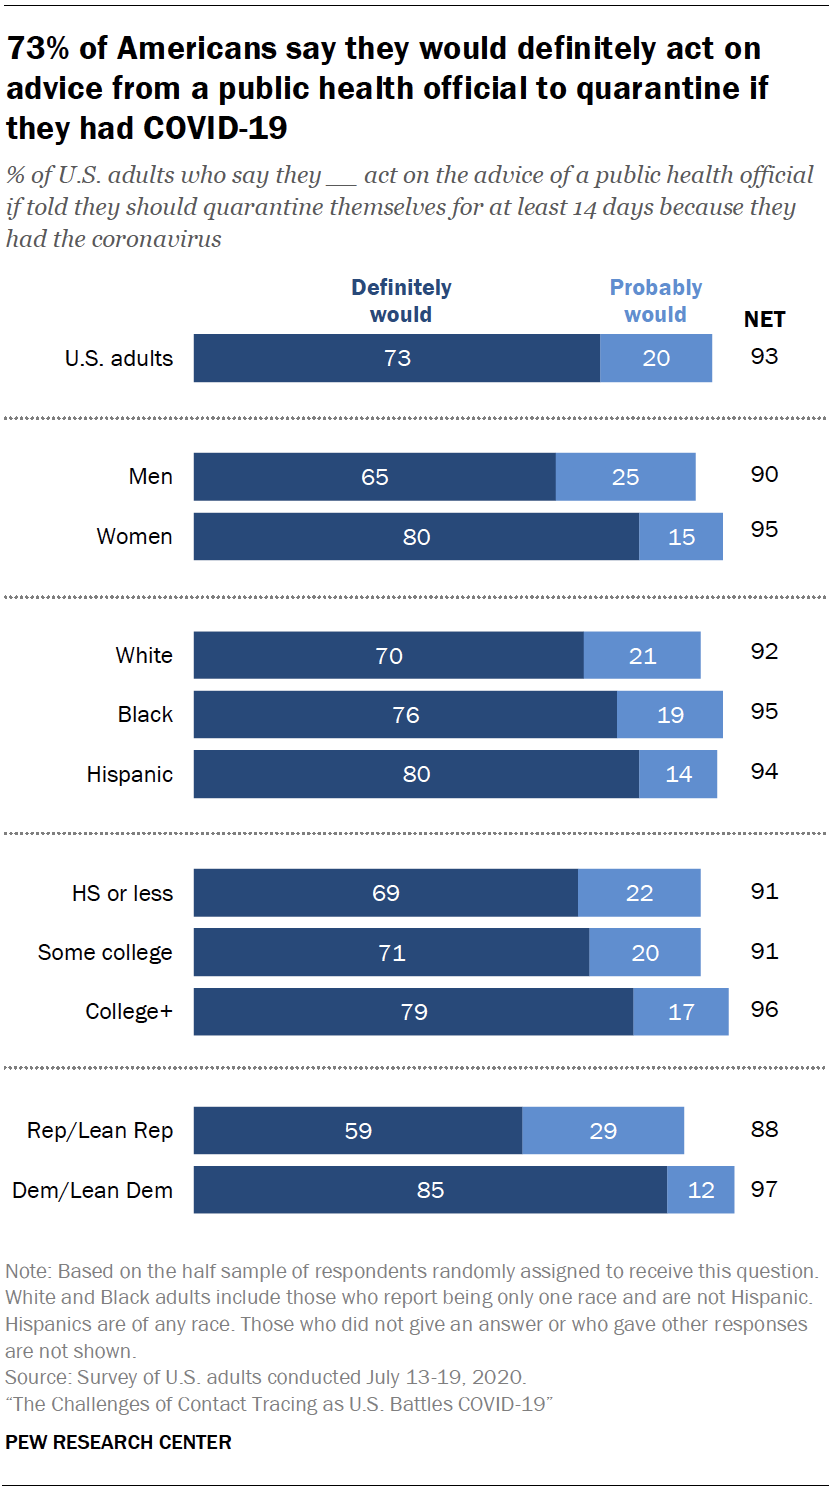 Chart shows 73% of Americans say they would definitely act on advice from a public health official to quarantine if they had COVID-19